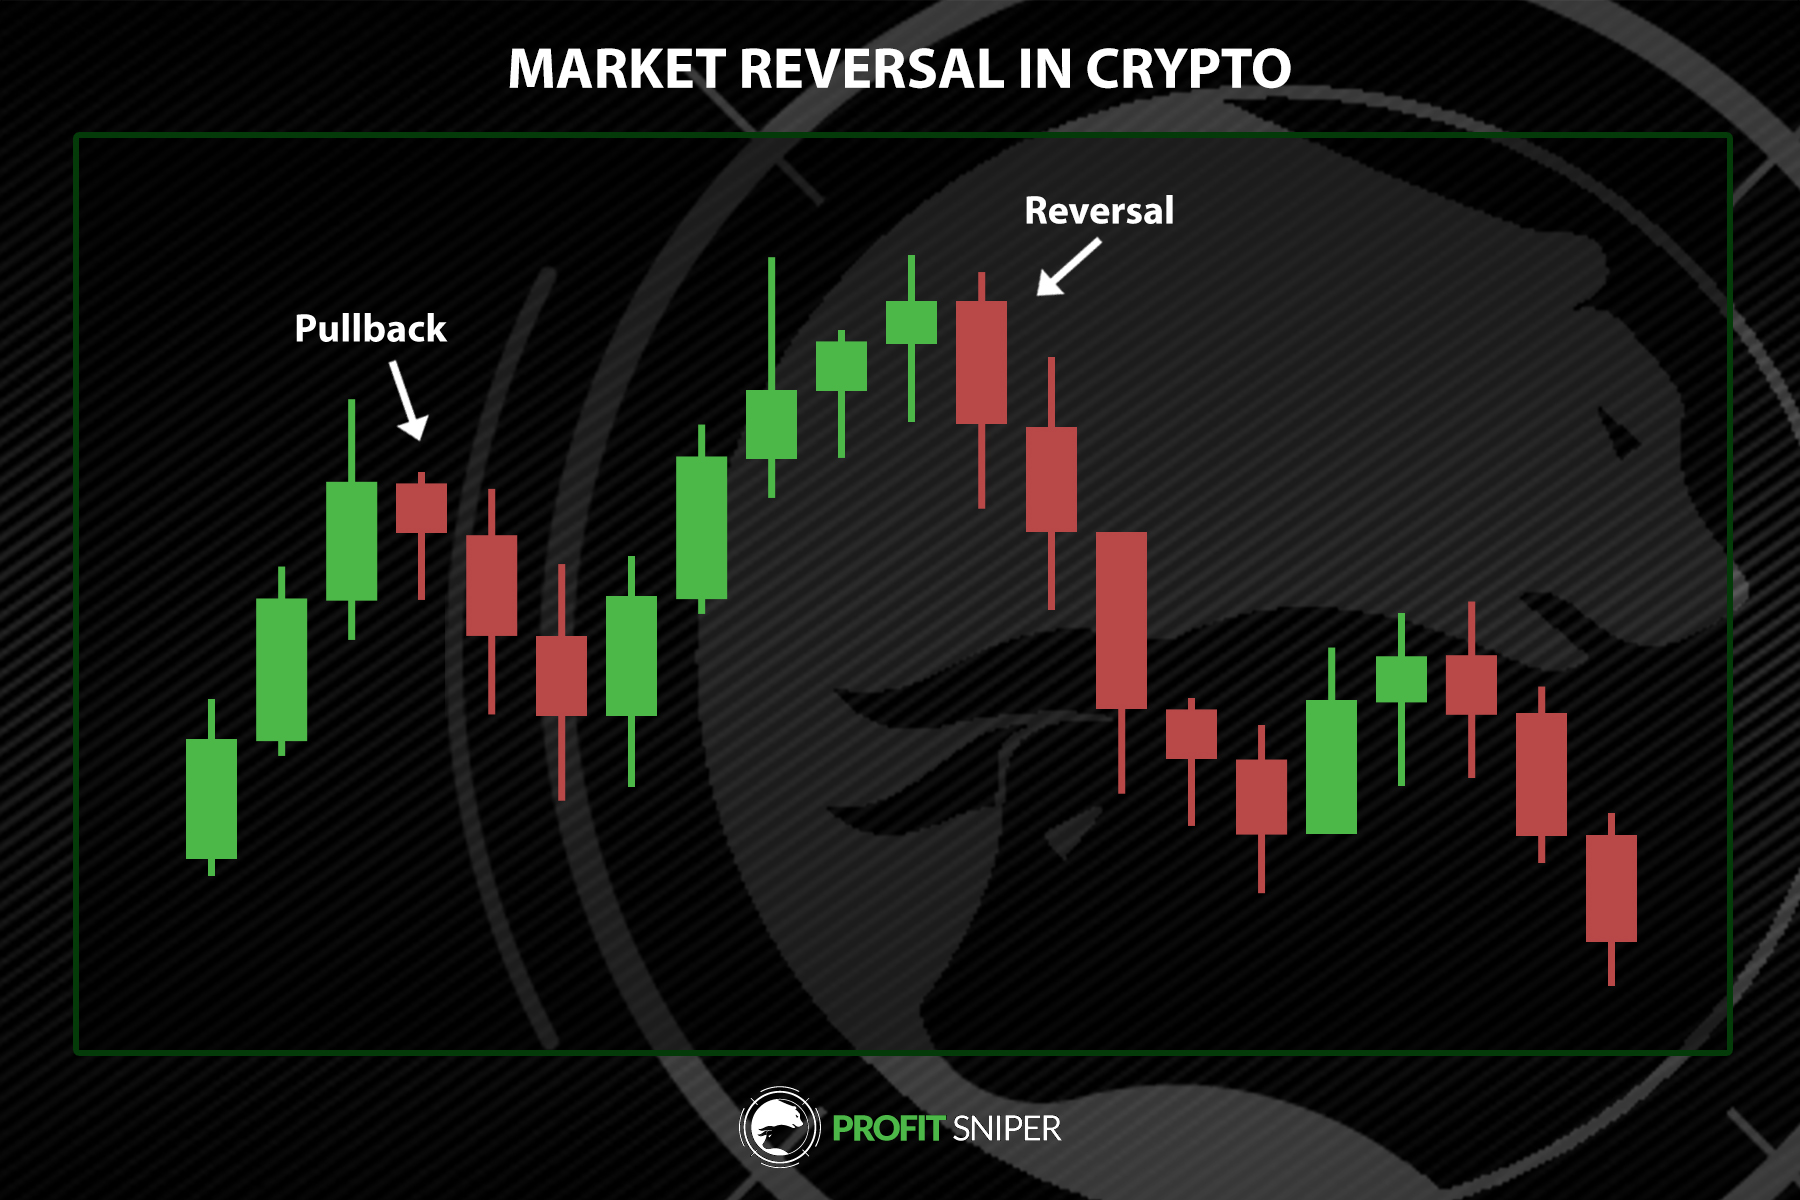 Pullbacks and Reversals in Crypto trading